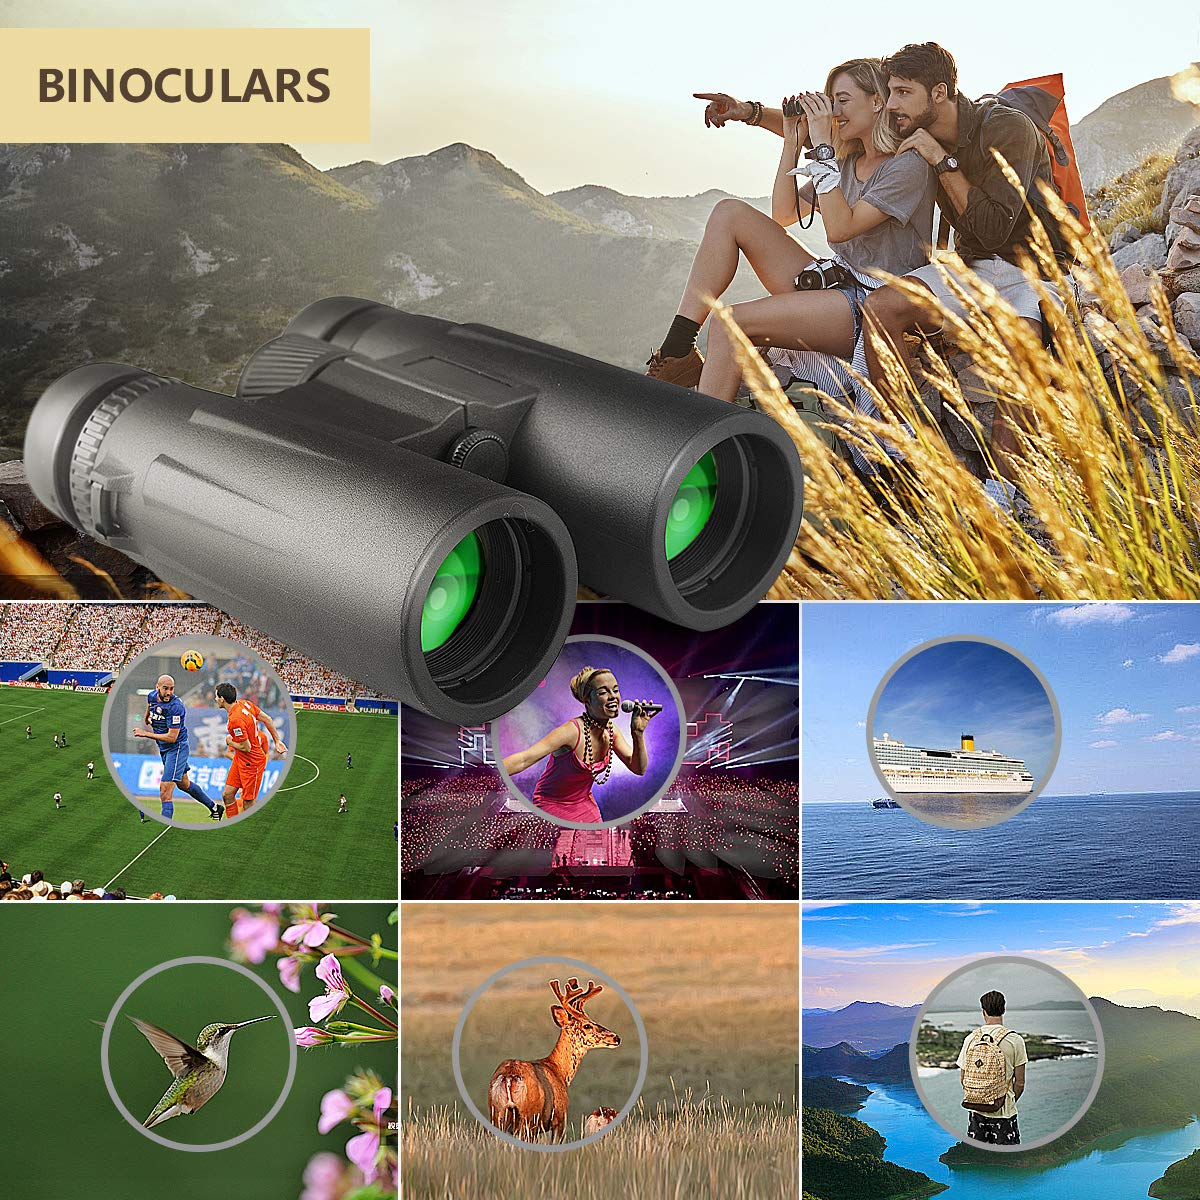 12X42 Roof Prism Binoculars Waterproof Professional HD Binoculars with Low Light Night Vision FMC Lens & Carrying Bag Strap Compact Adults BAK4 Binocular for Travel Birds Watching Hunting Concerts